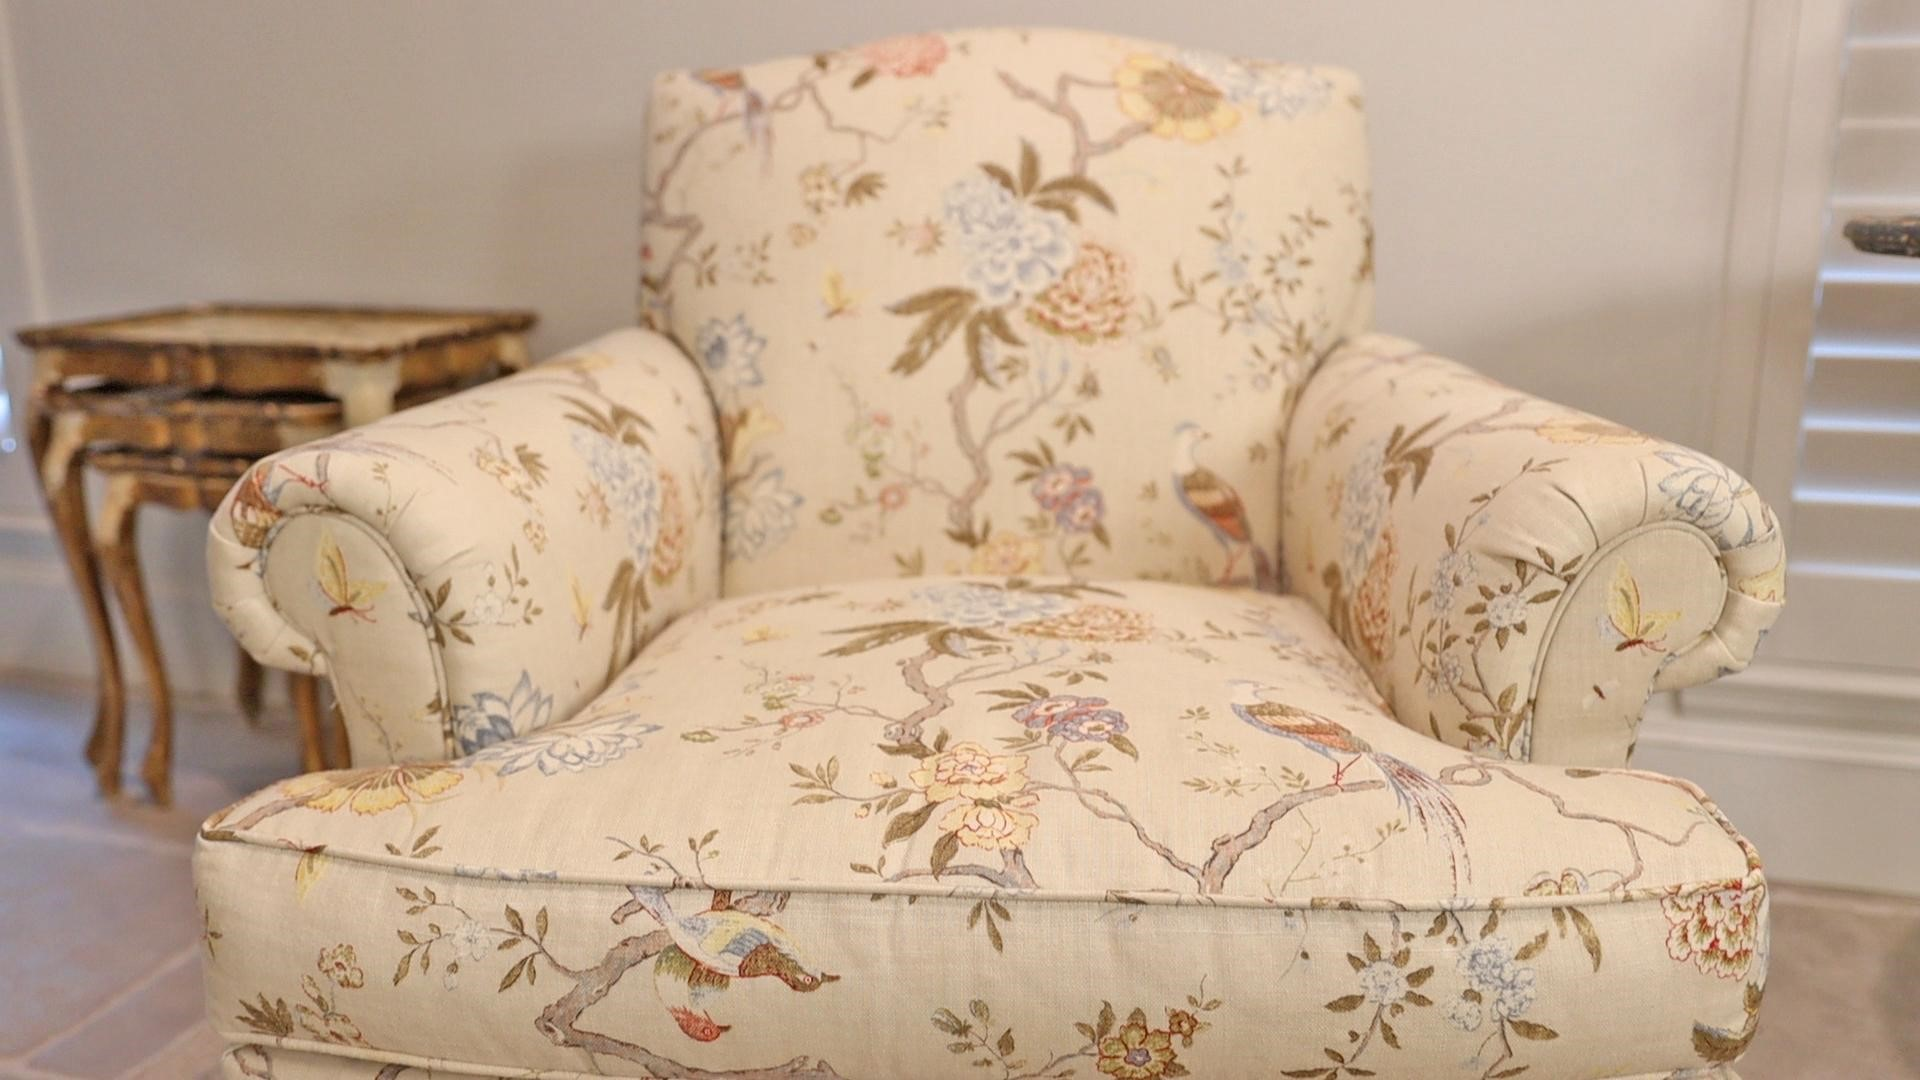 A close-up of the French country furniture armchair in cream with hydrangeas, birds, butterflies, and floral details, by Amitha.